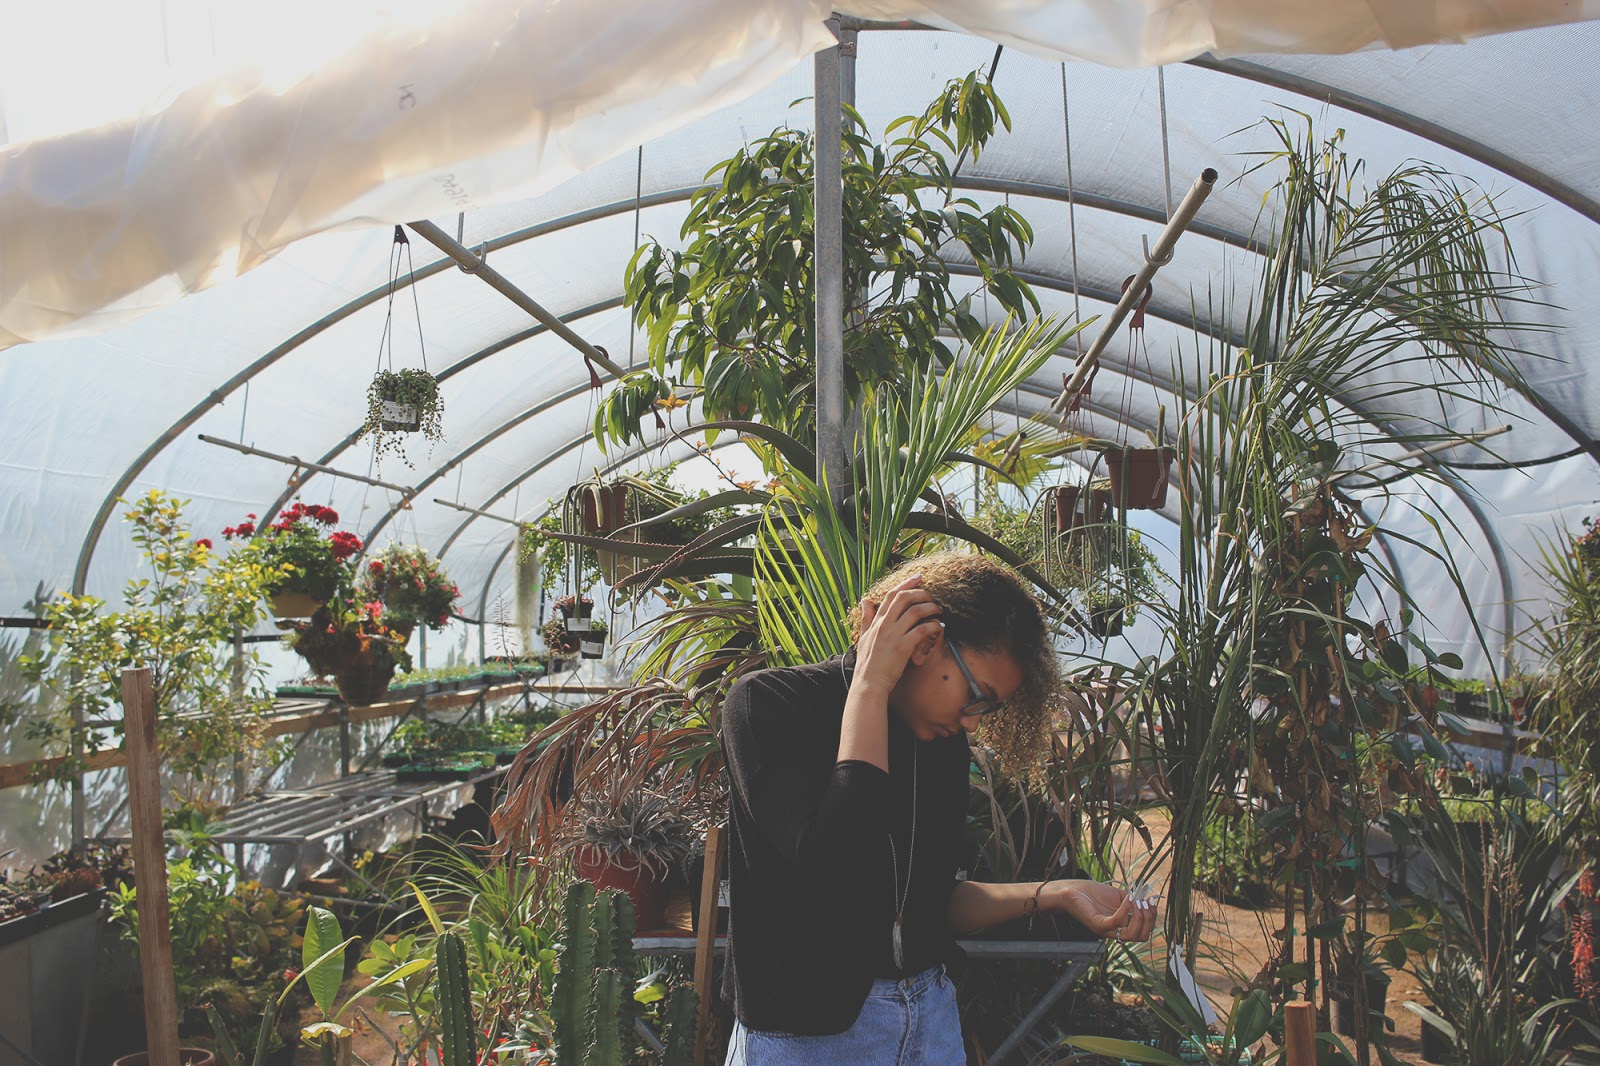 Girl in Greenhouse